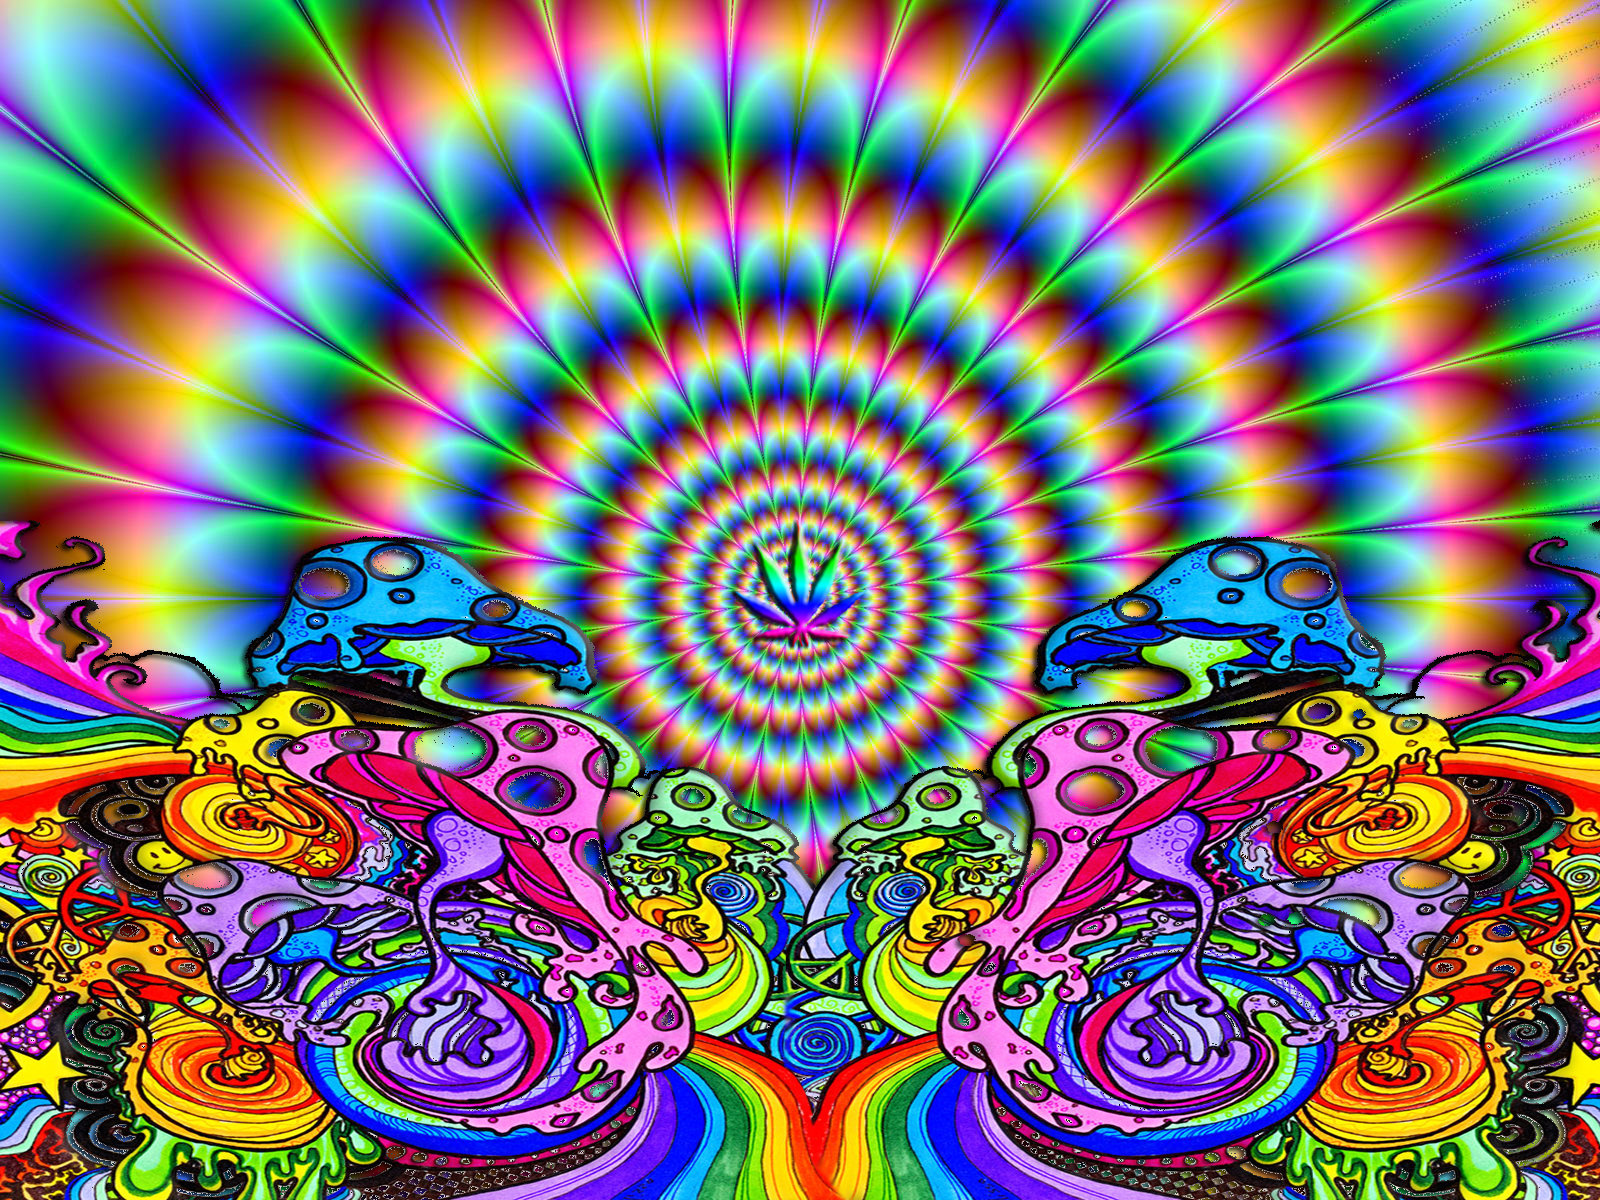 Trippy Wallpaper Art Free Download Wallpaper Dawallpaperz